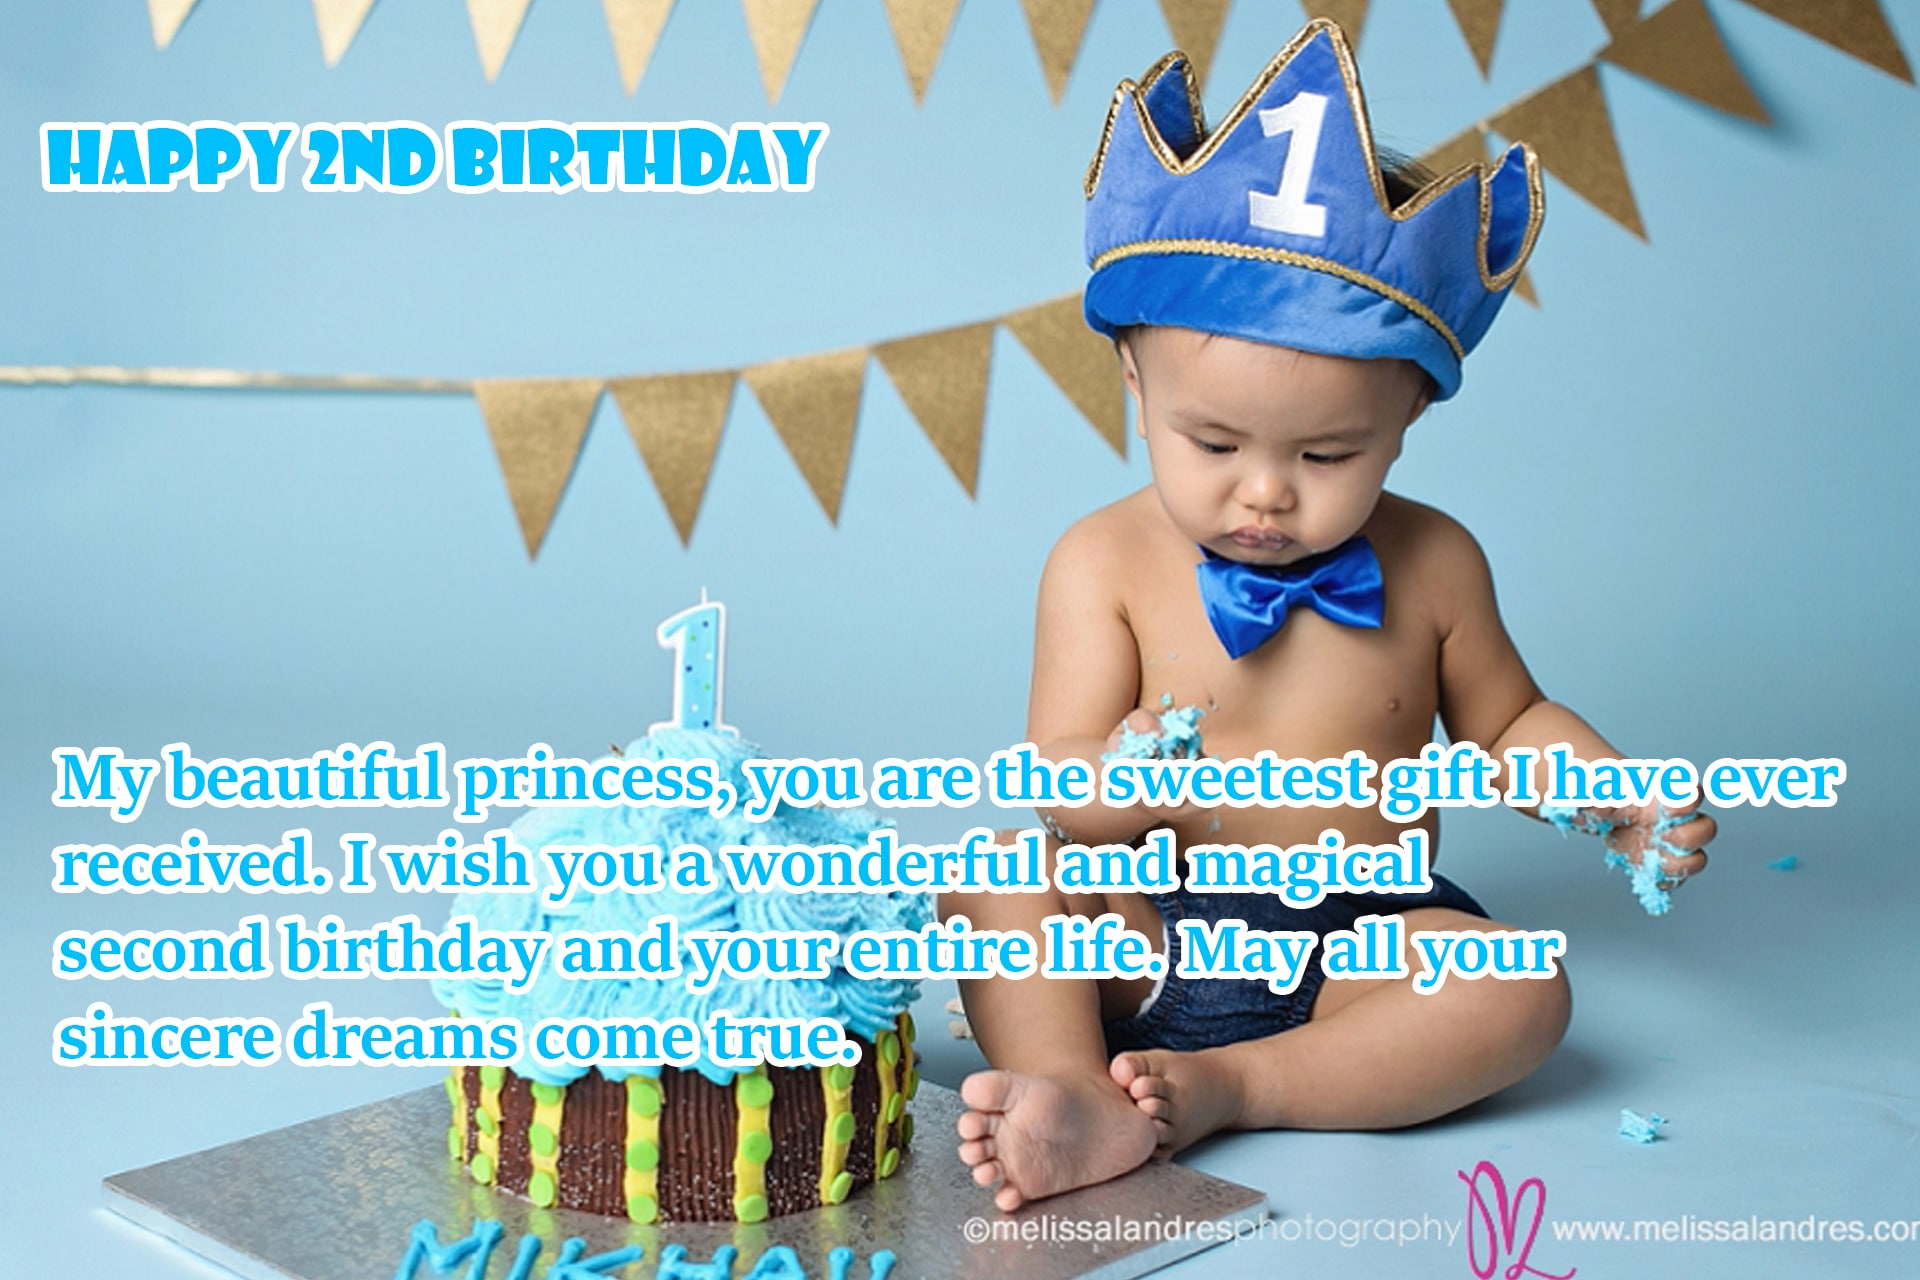 Happy 2nd Birthday Wishes For Baby Girl & Boy